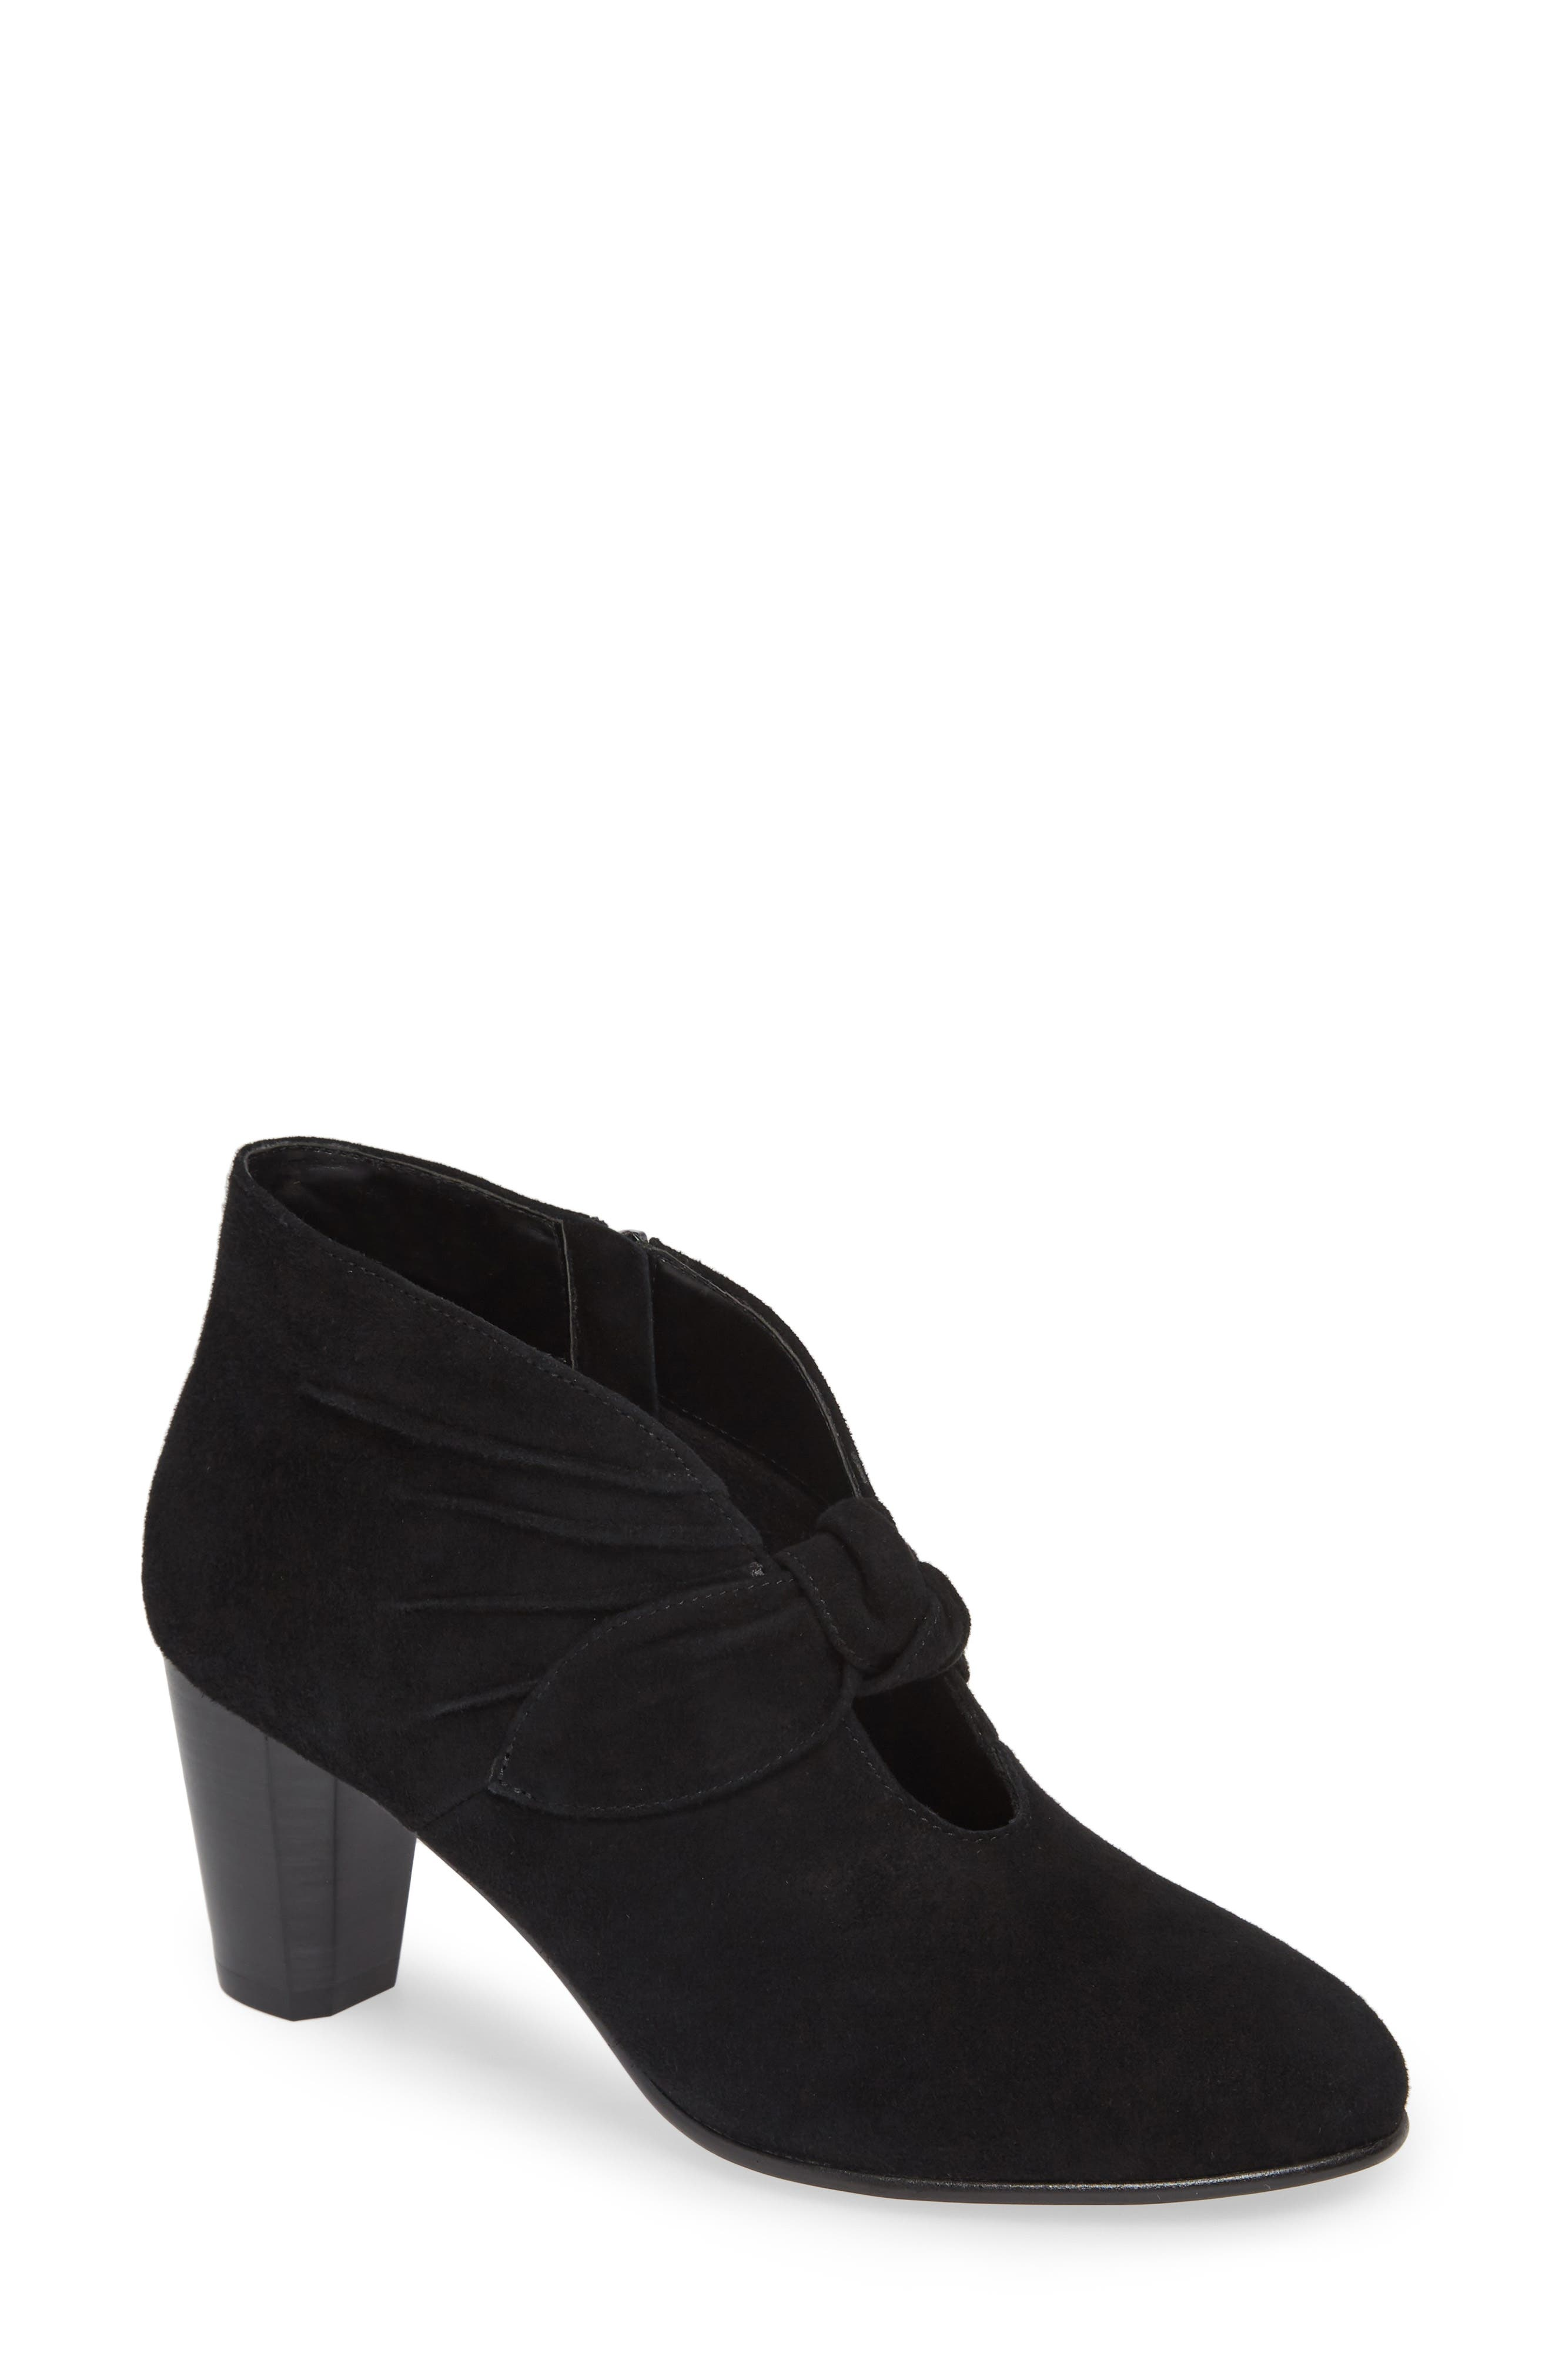 David Tate Gwen Knotted Pump, Black